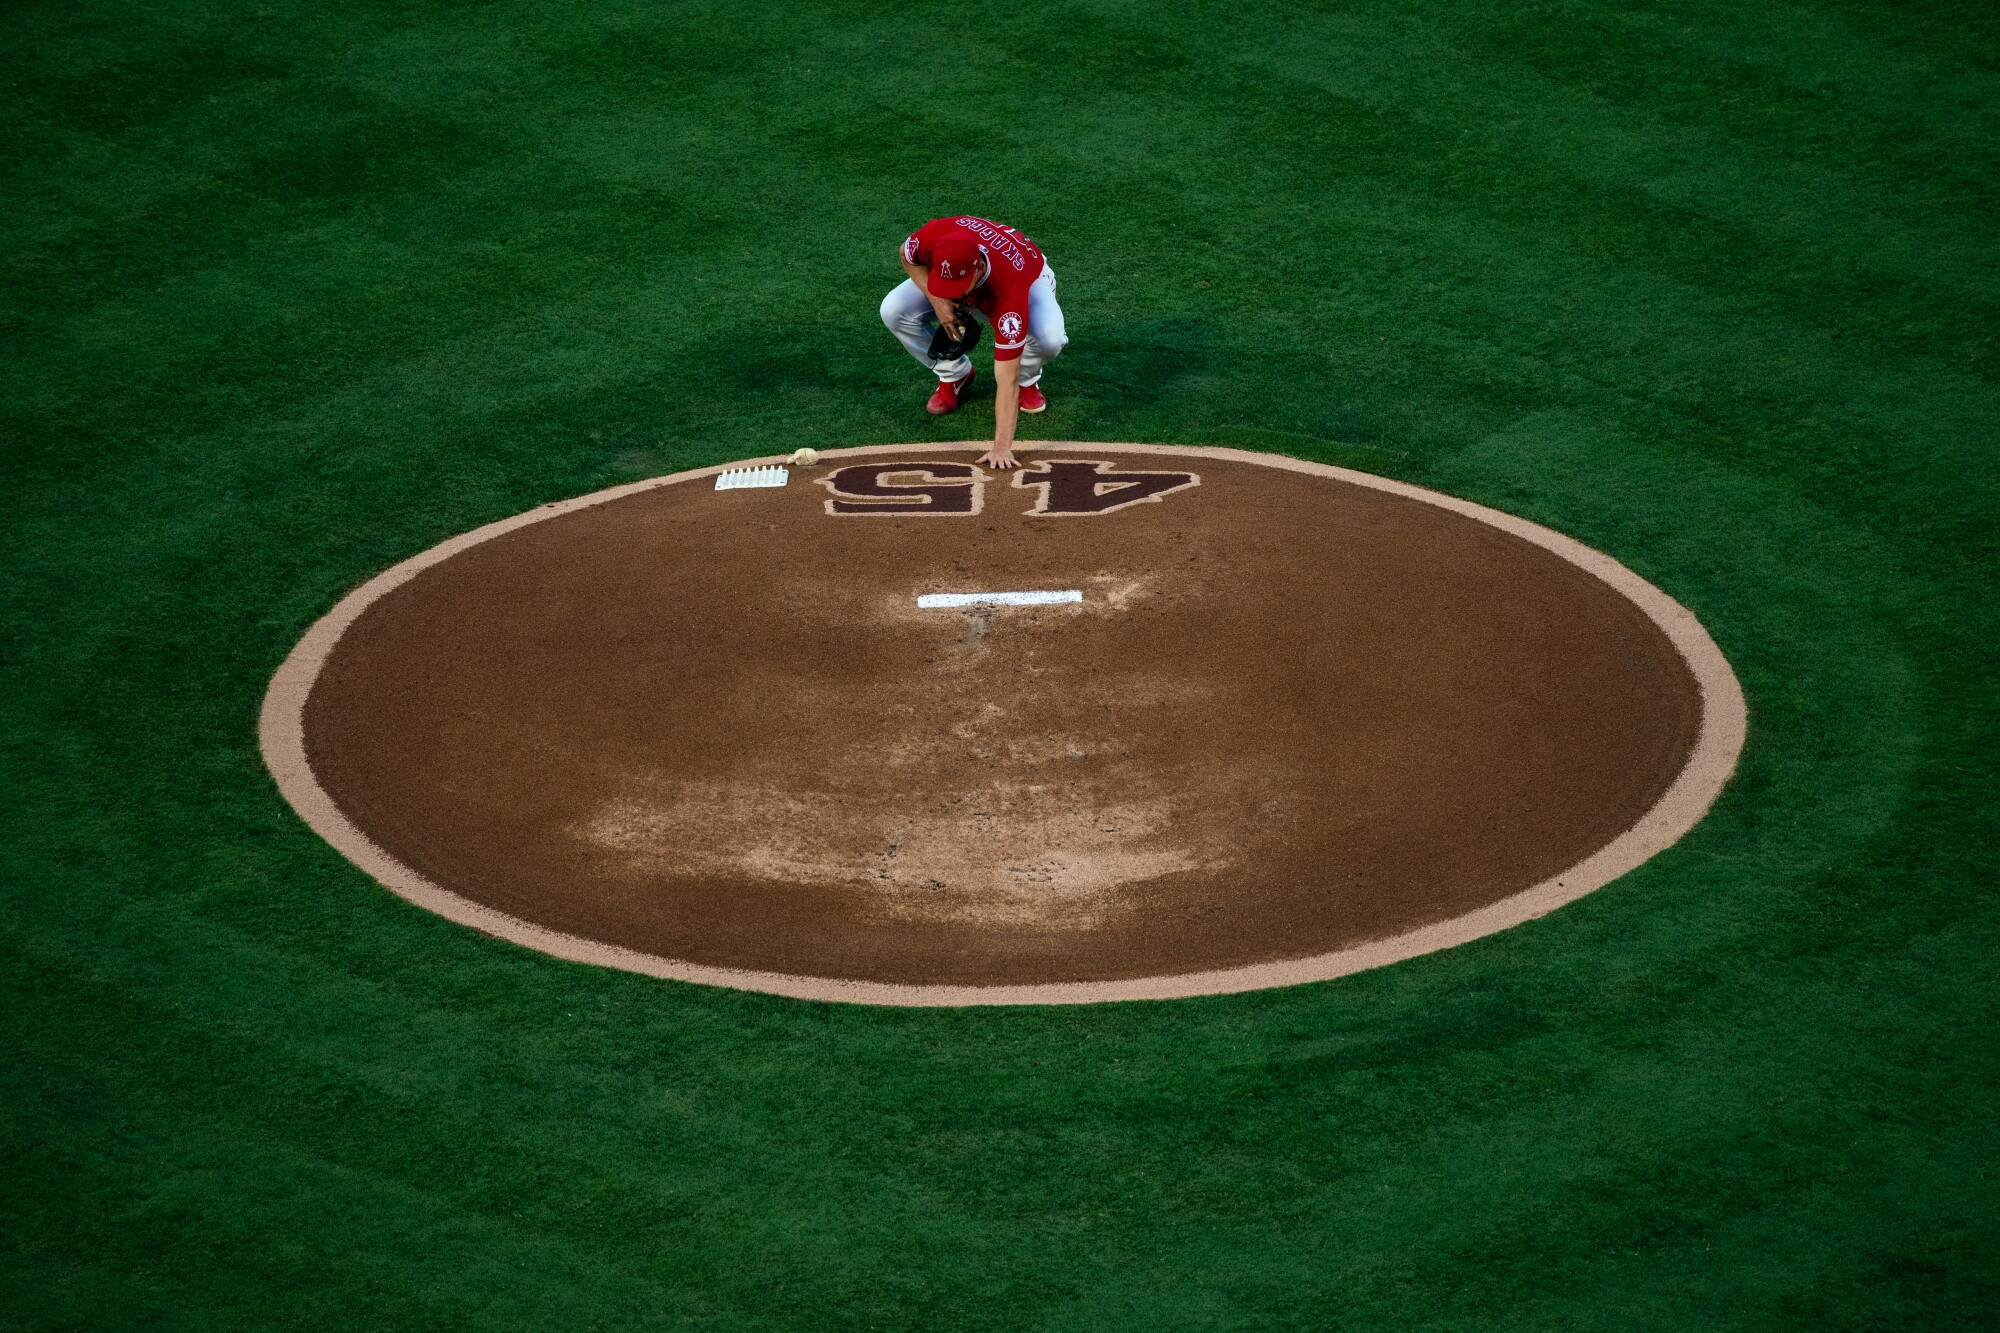 Los Angeles Angels starting pitcher Taylor Cole (67) places his hand on the No. 45 on the pitchers mound.